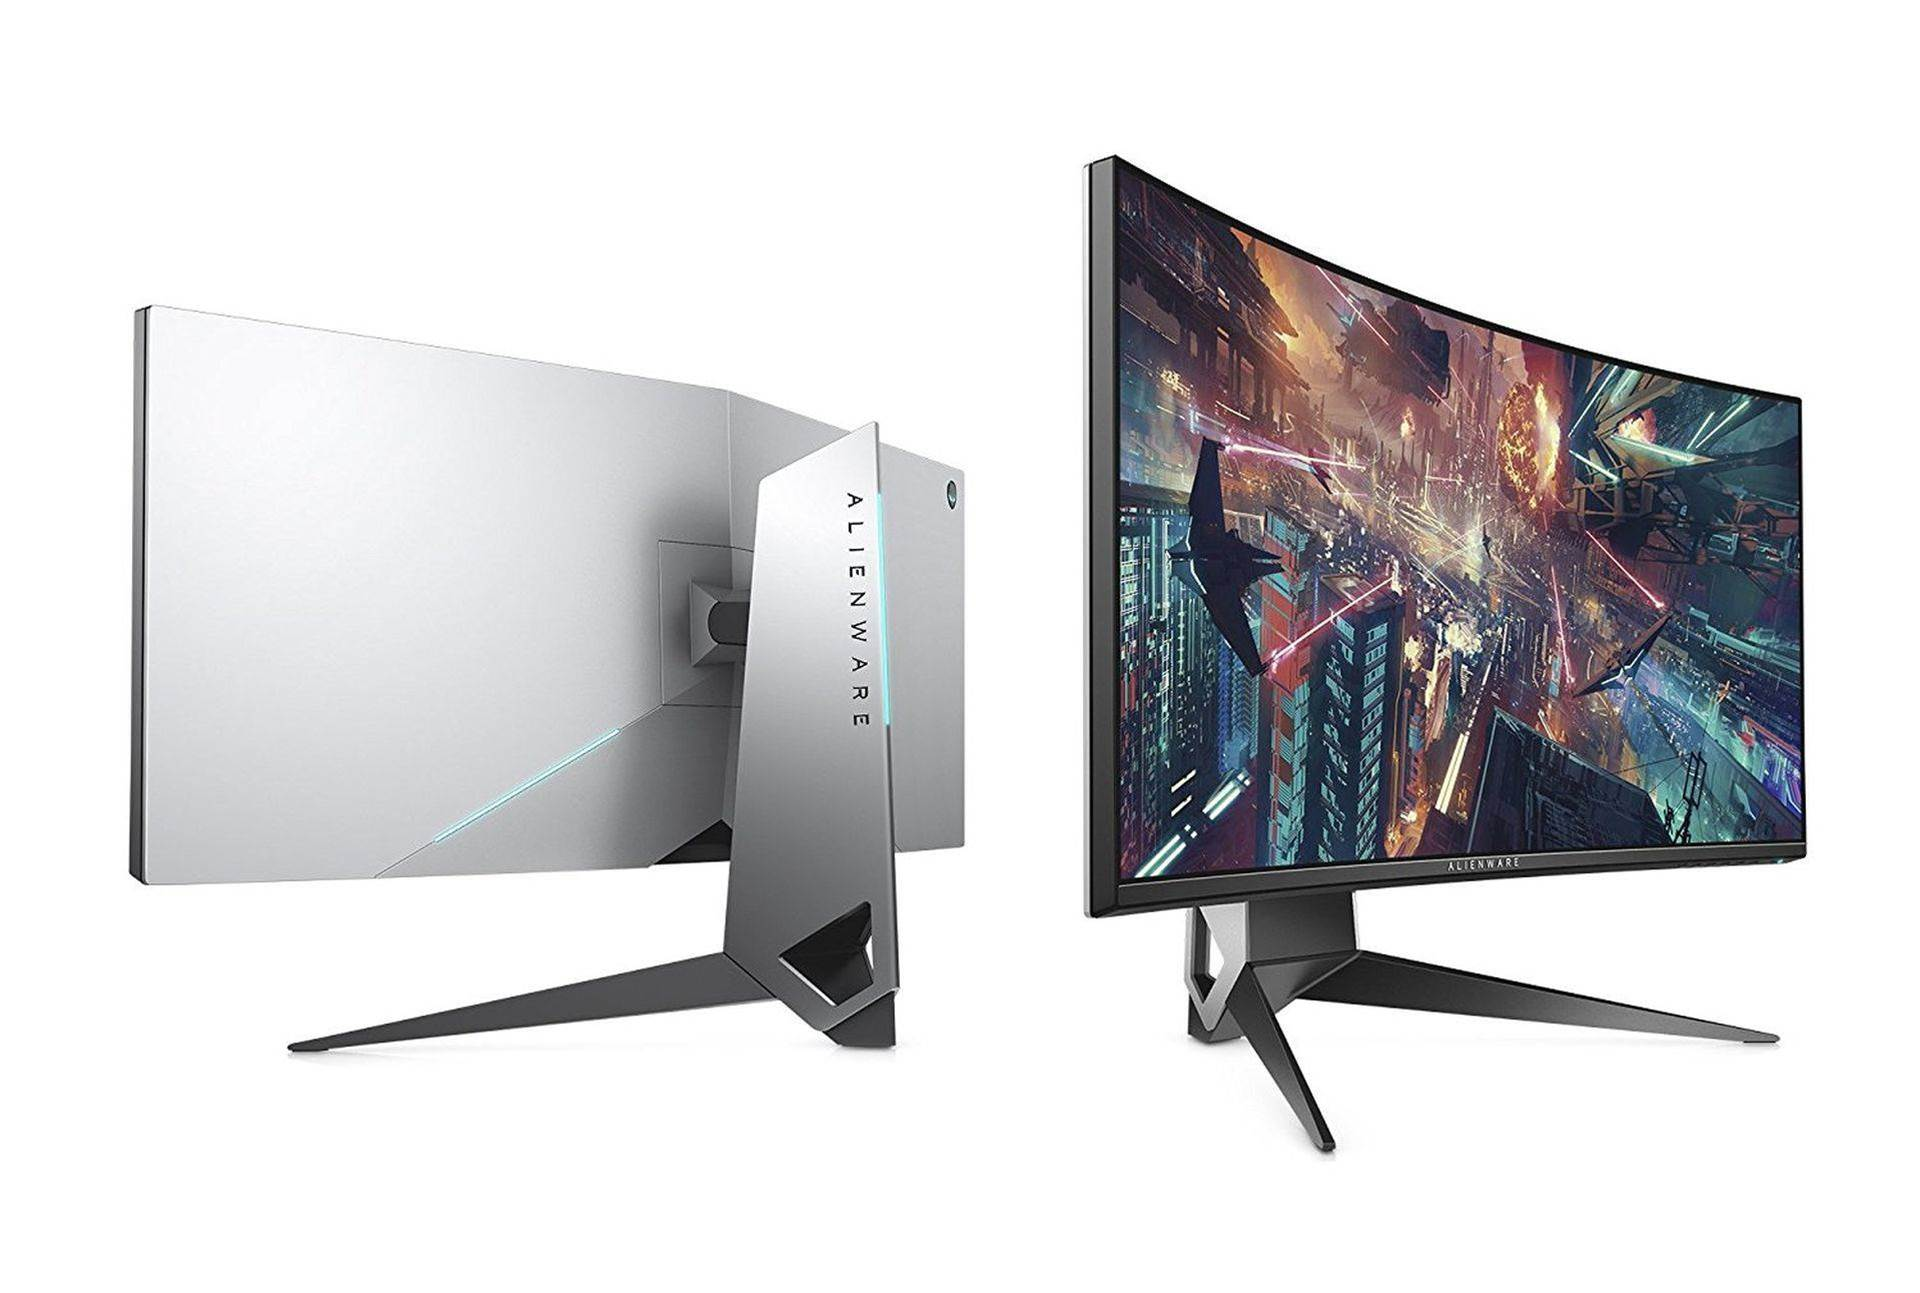 Review: Alienware AW3418DW 34-inch curved gaming monitor